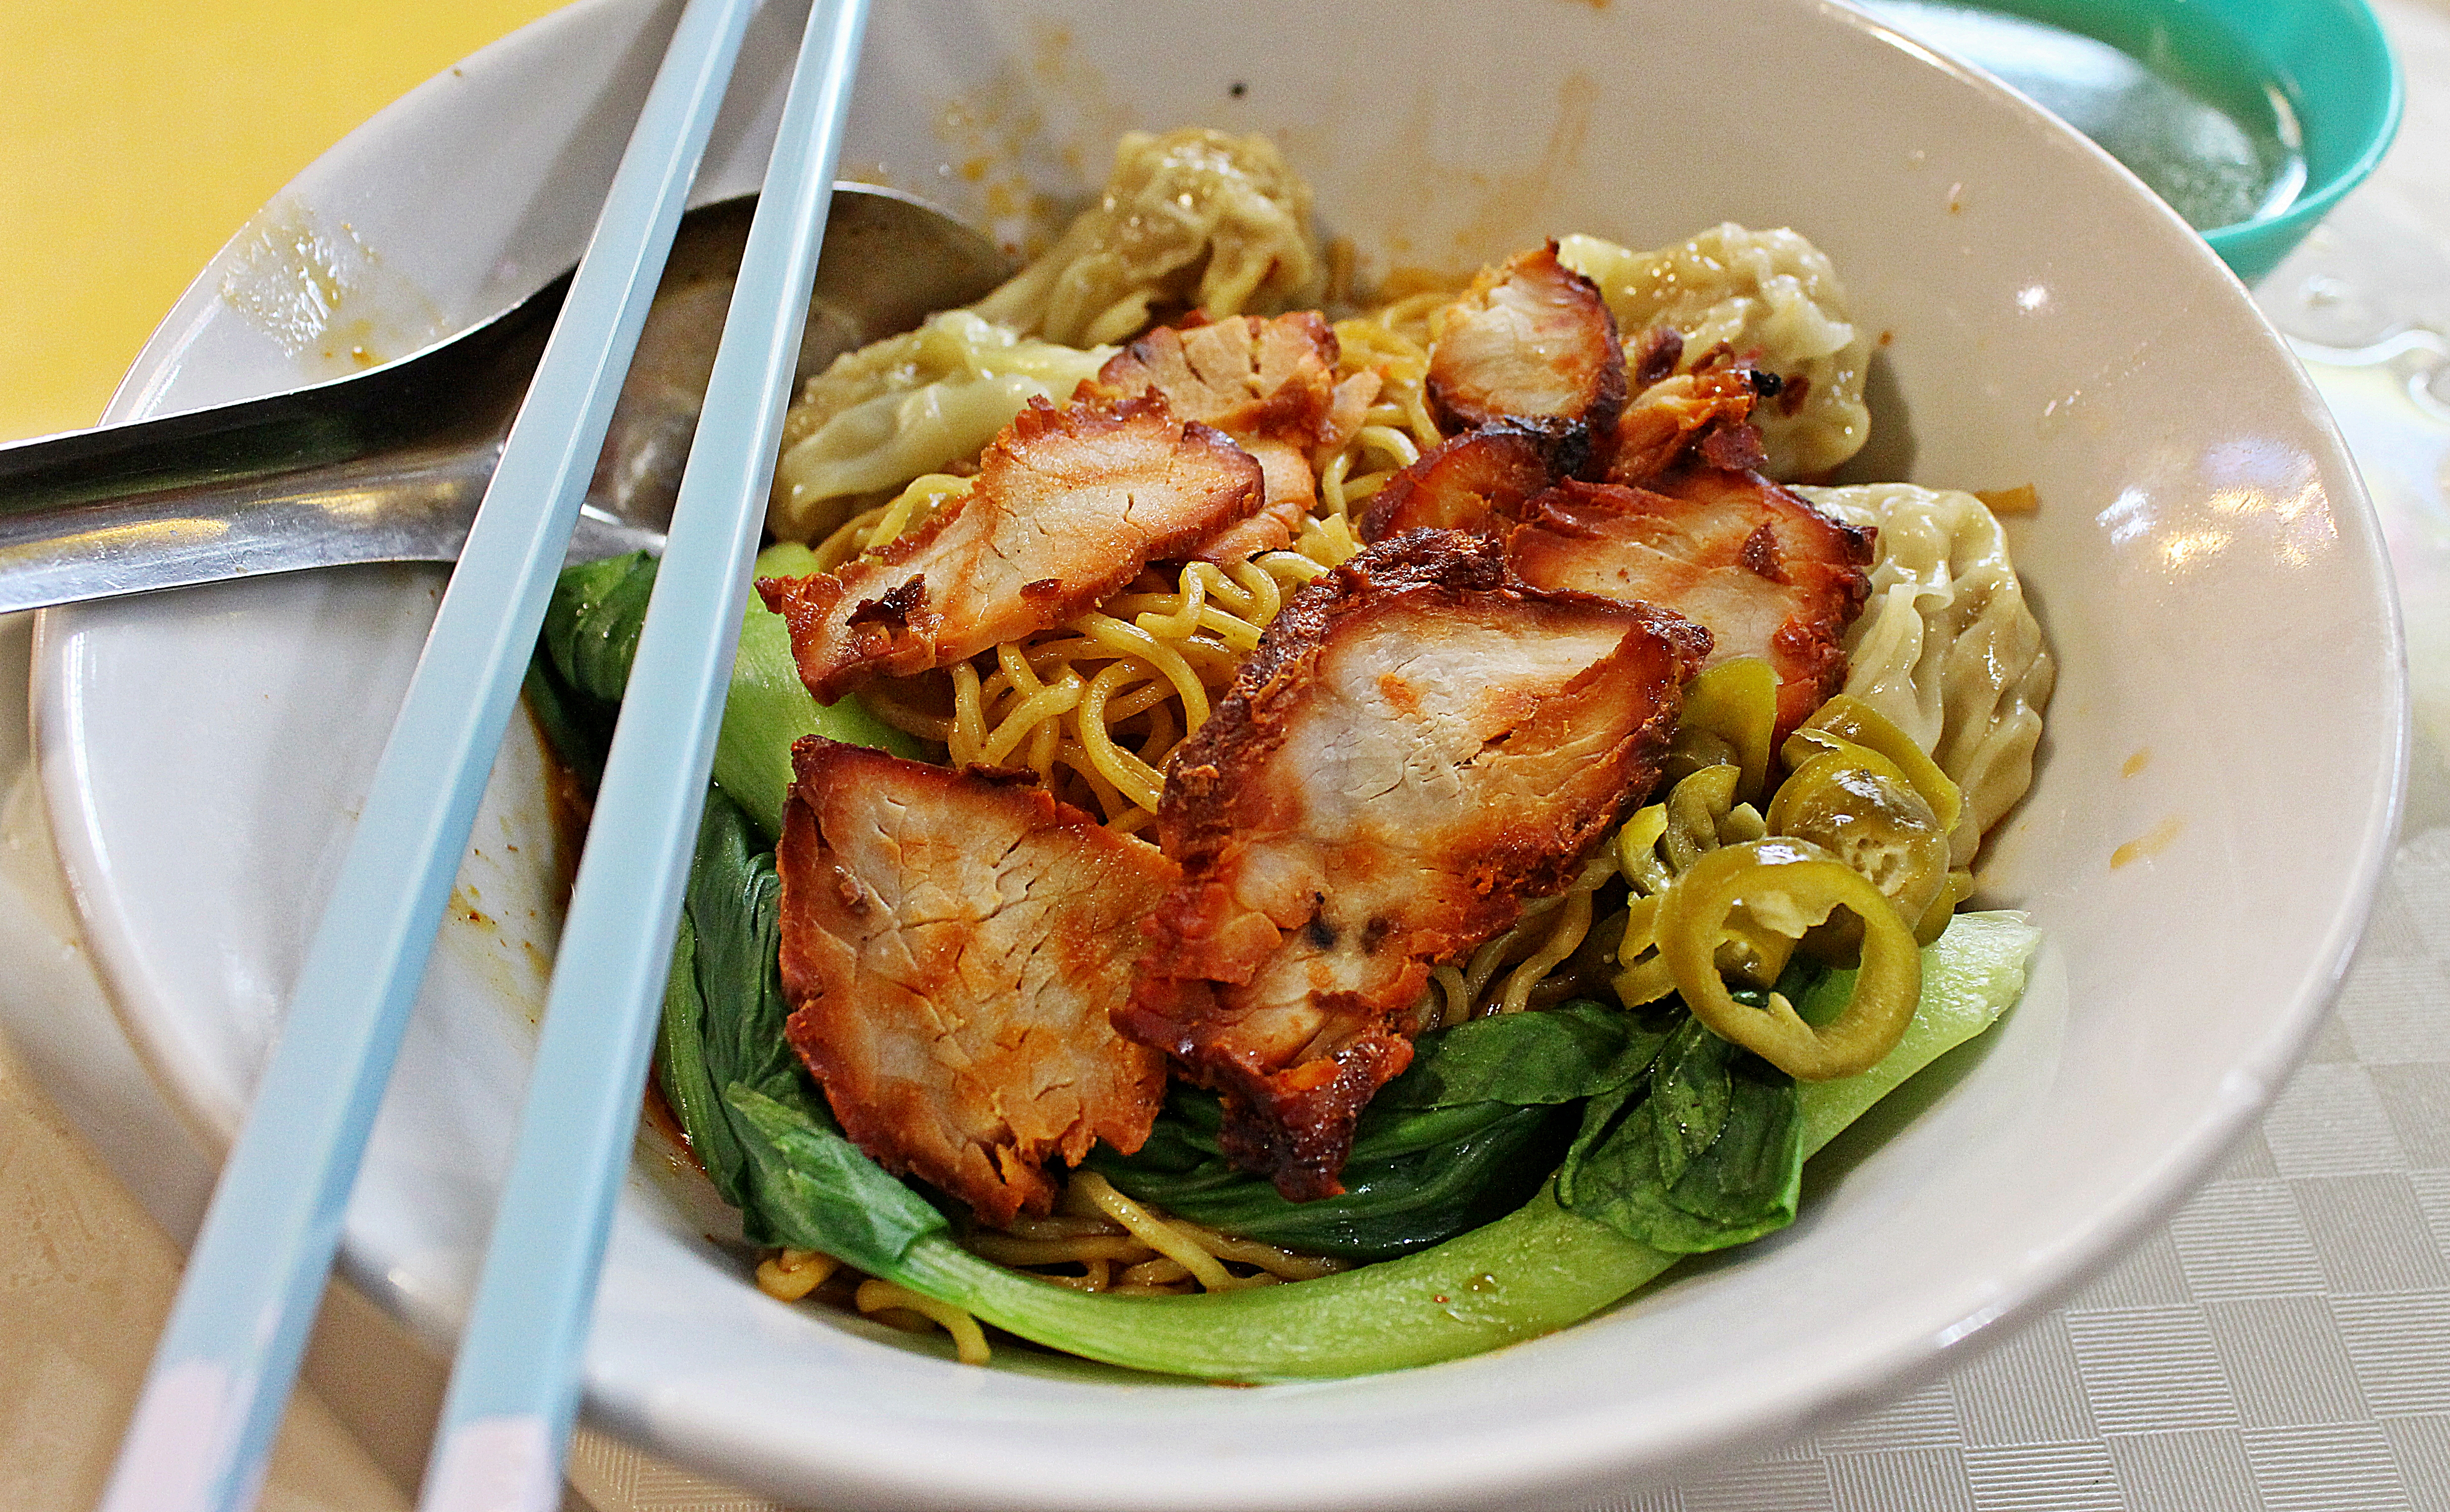 wanton wonton mee soup dumplings yellow noodles char siew roast pork green vegetables leafy singapore malaysia traditional hawker street food